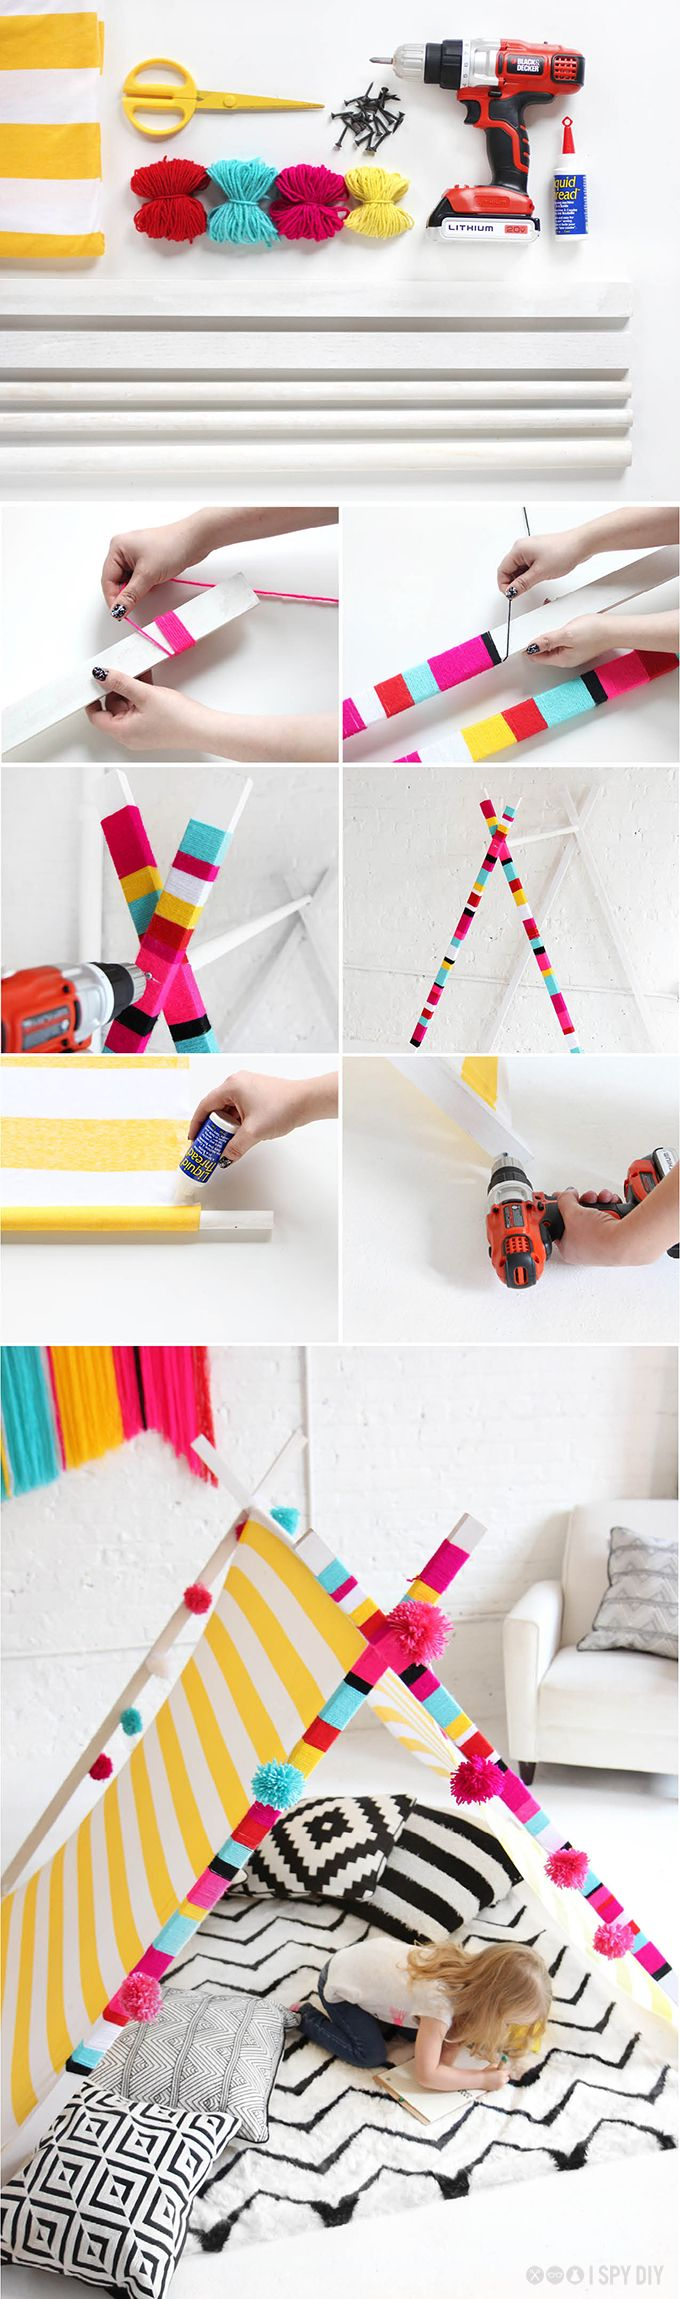 DIY STEPS | YARN WRAPPED TEEPEE ... trying this for the kids over the summer.